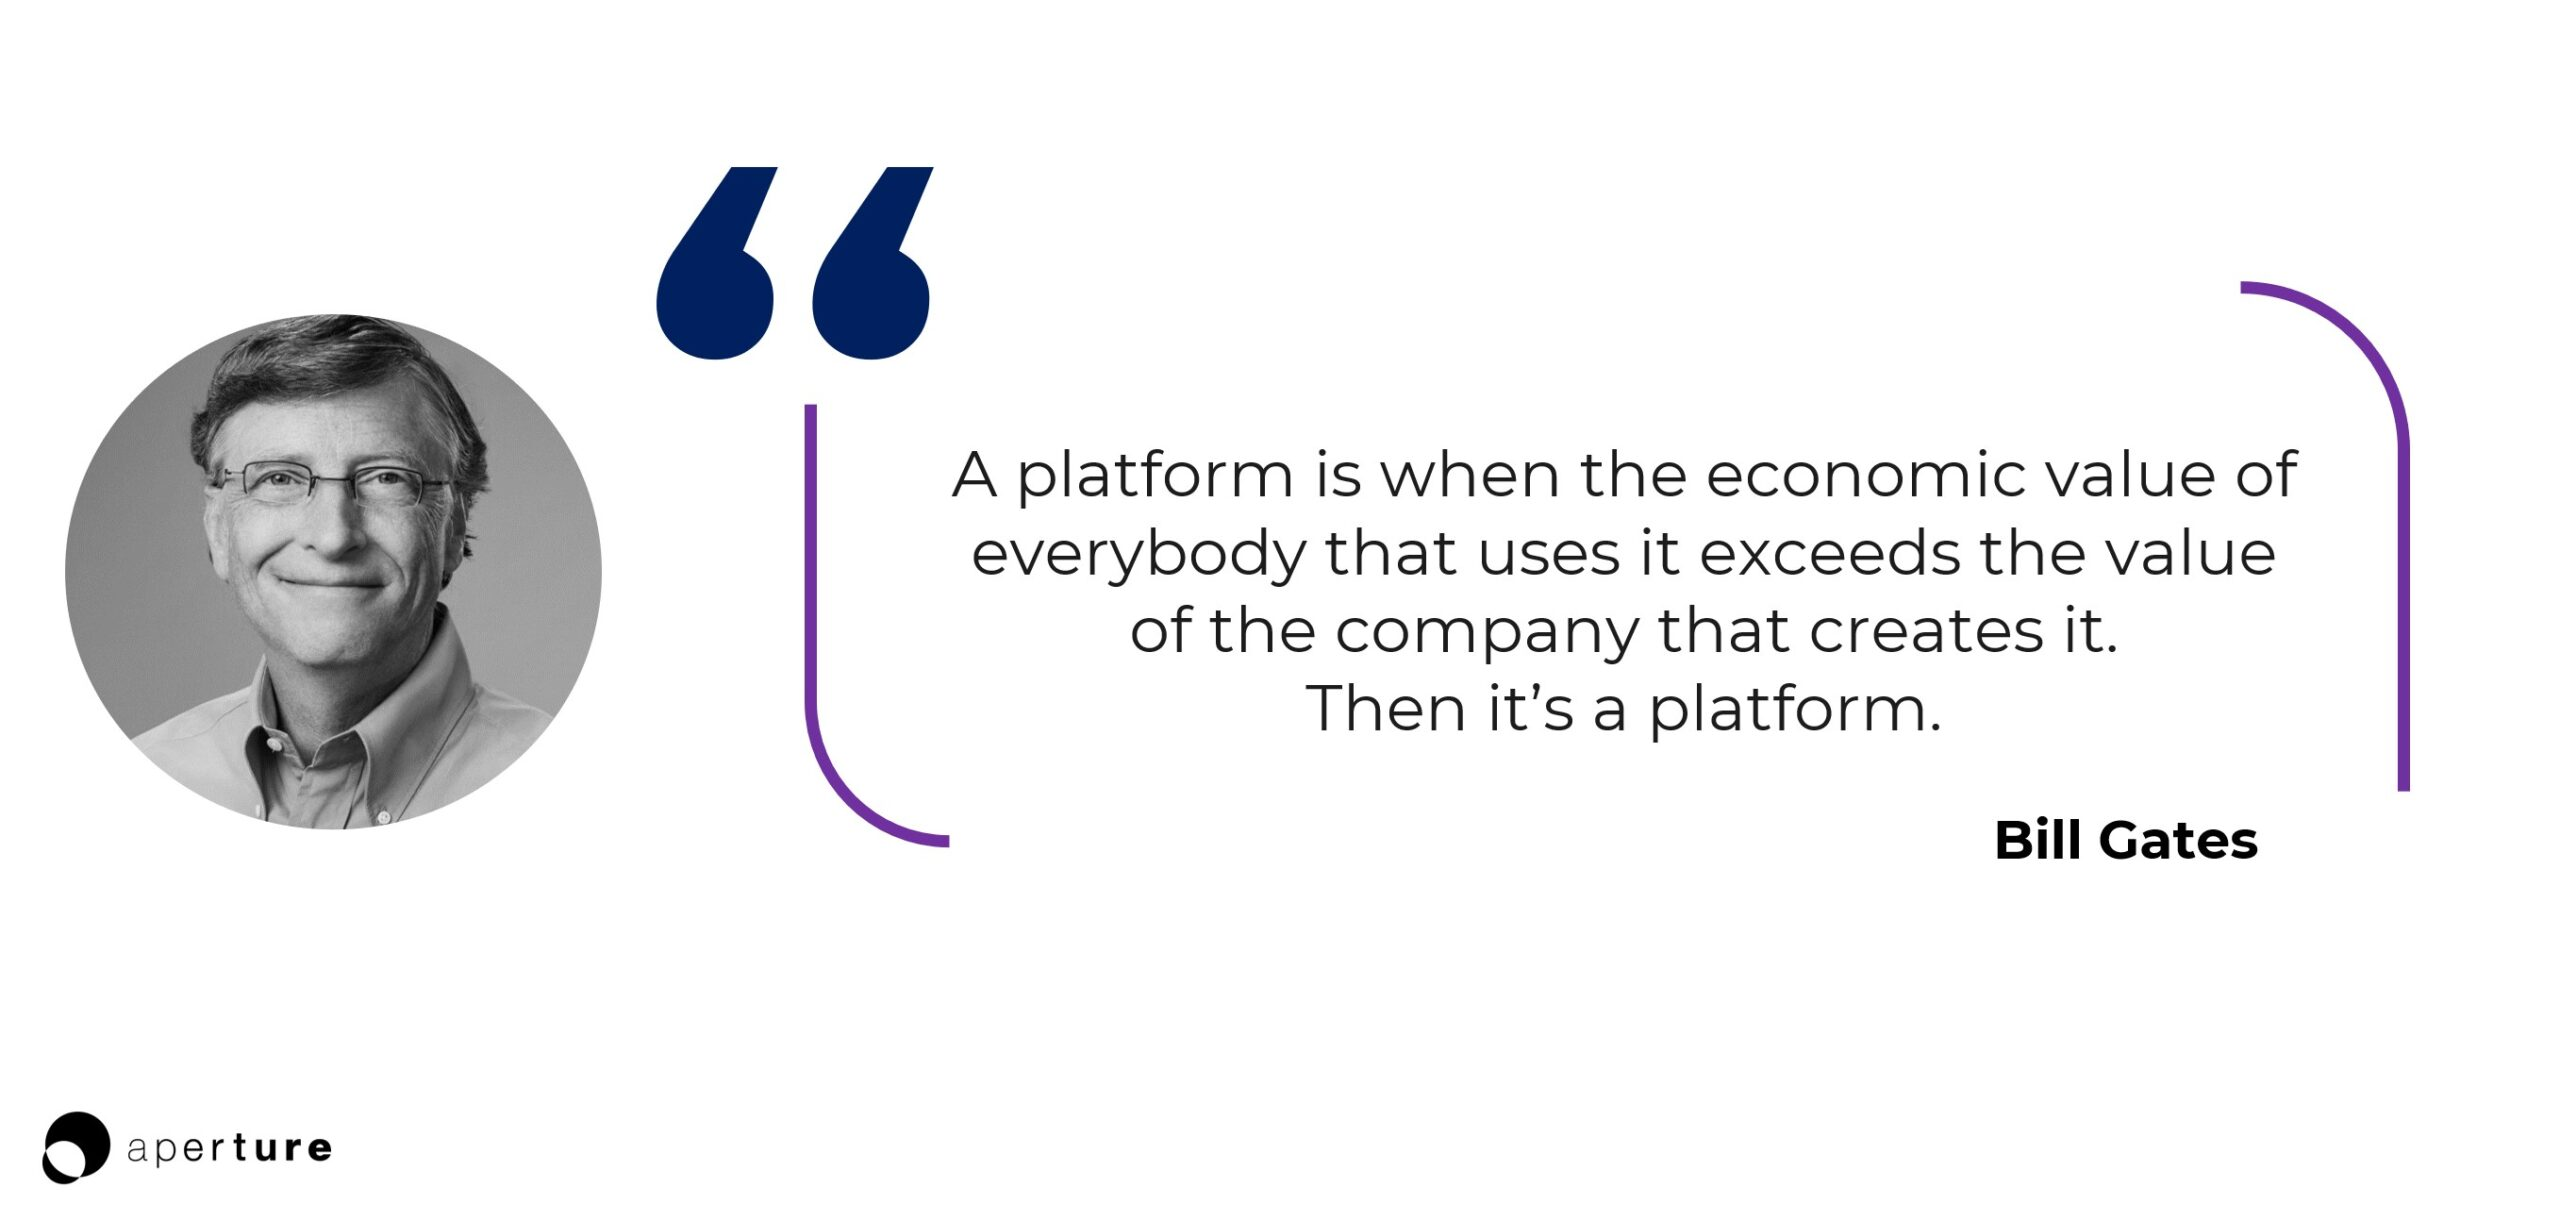 Bill Gates quote platform vs. aggregators